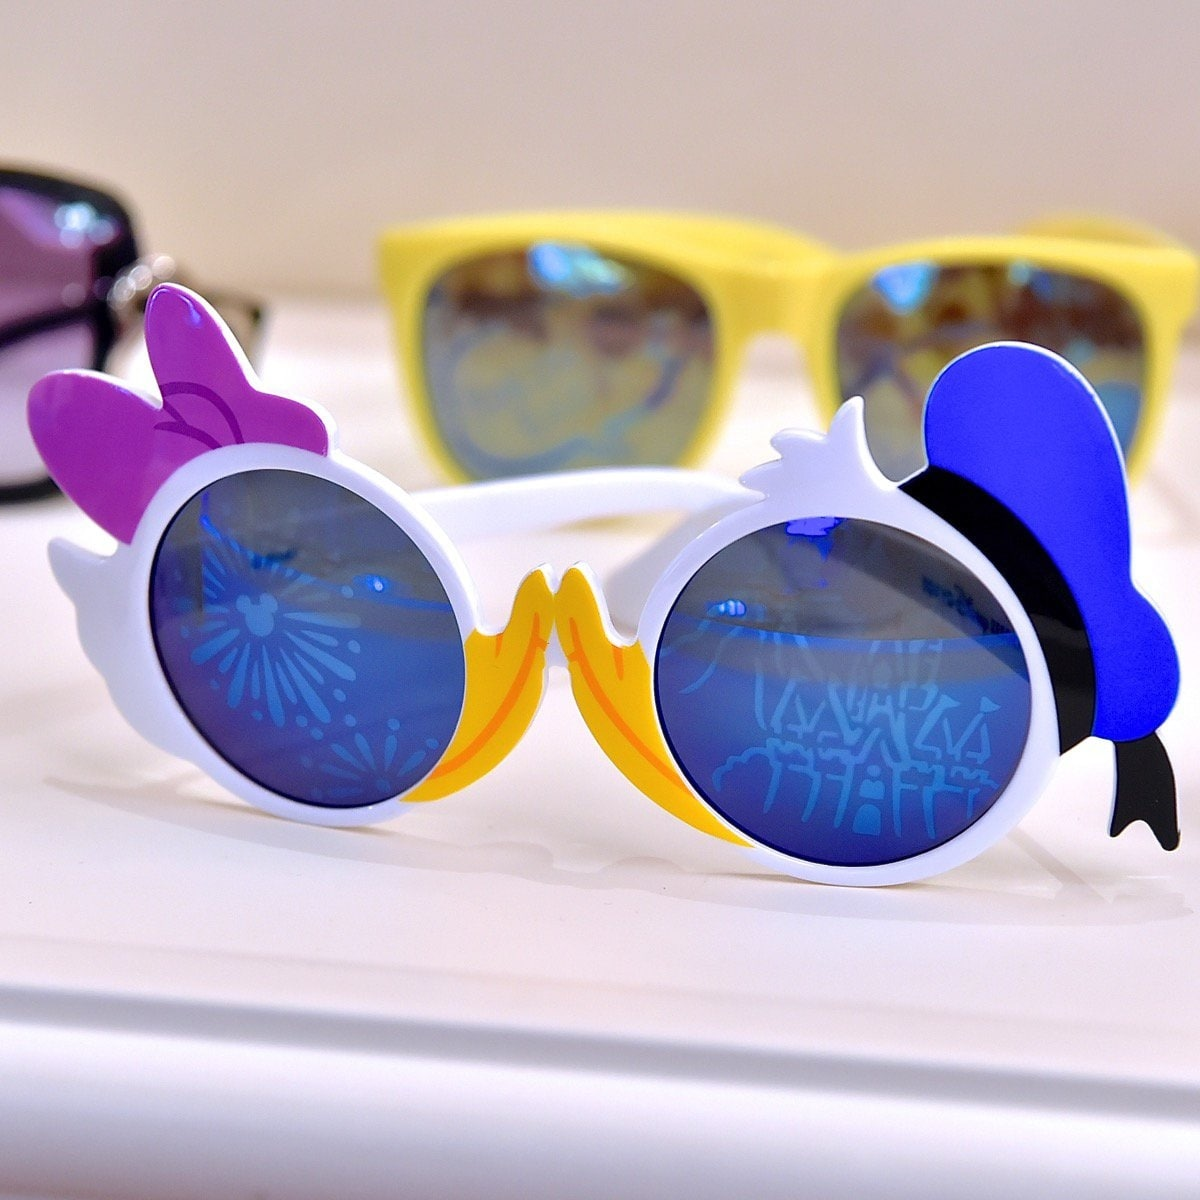 9. Donald & Daisy Kiss Sunglasses